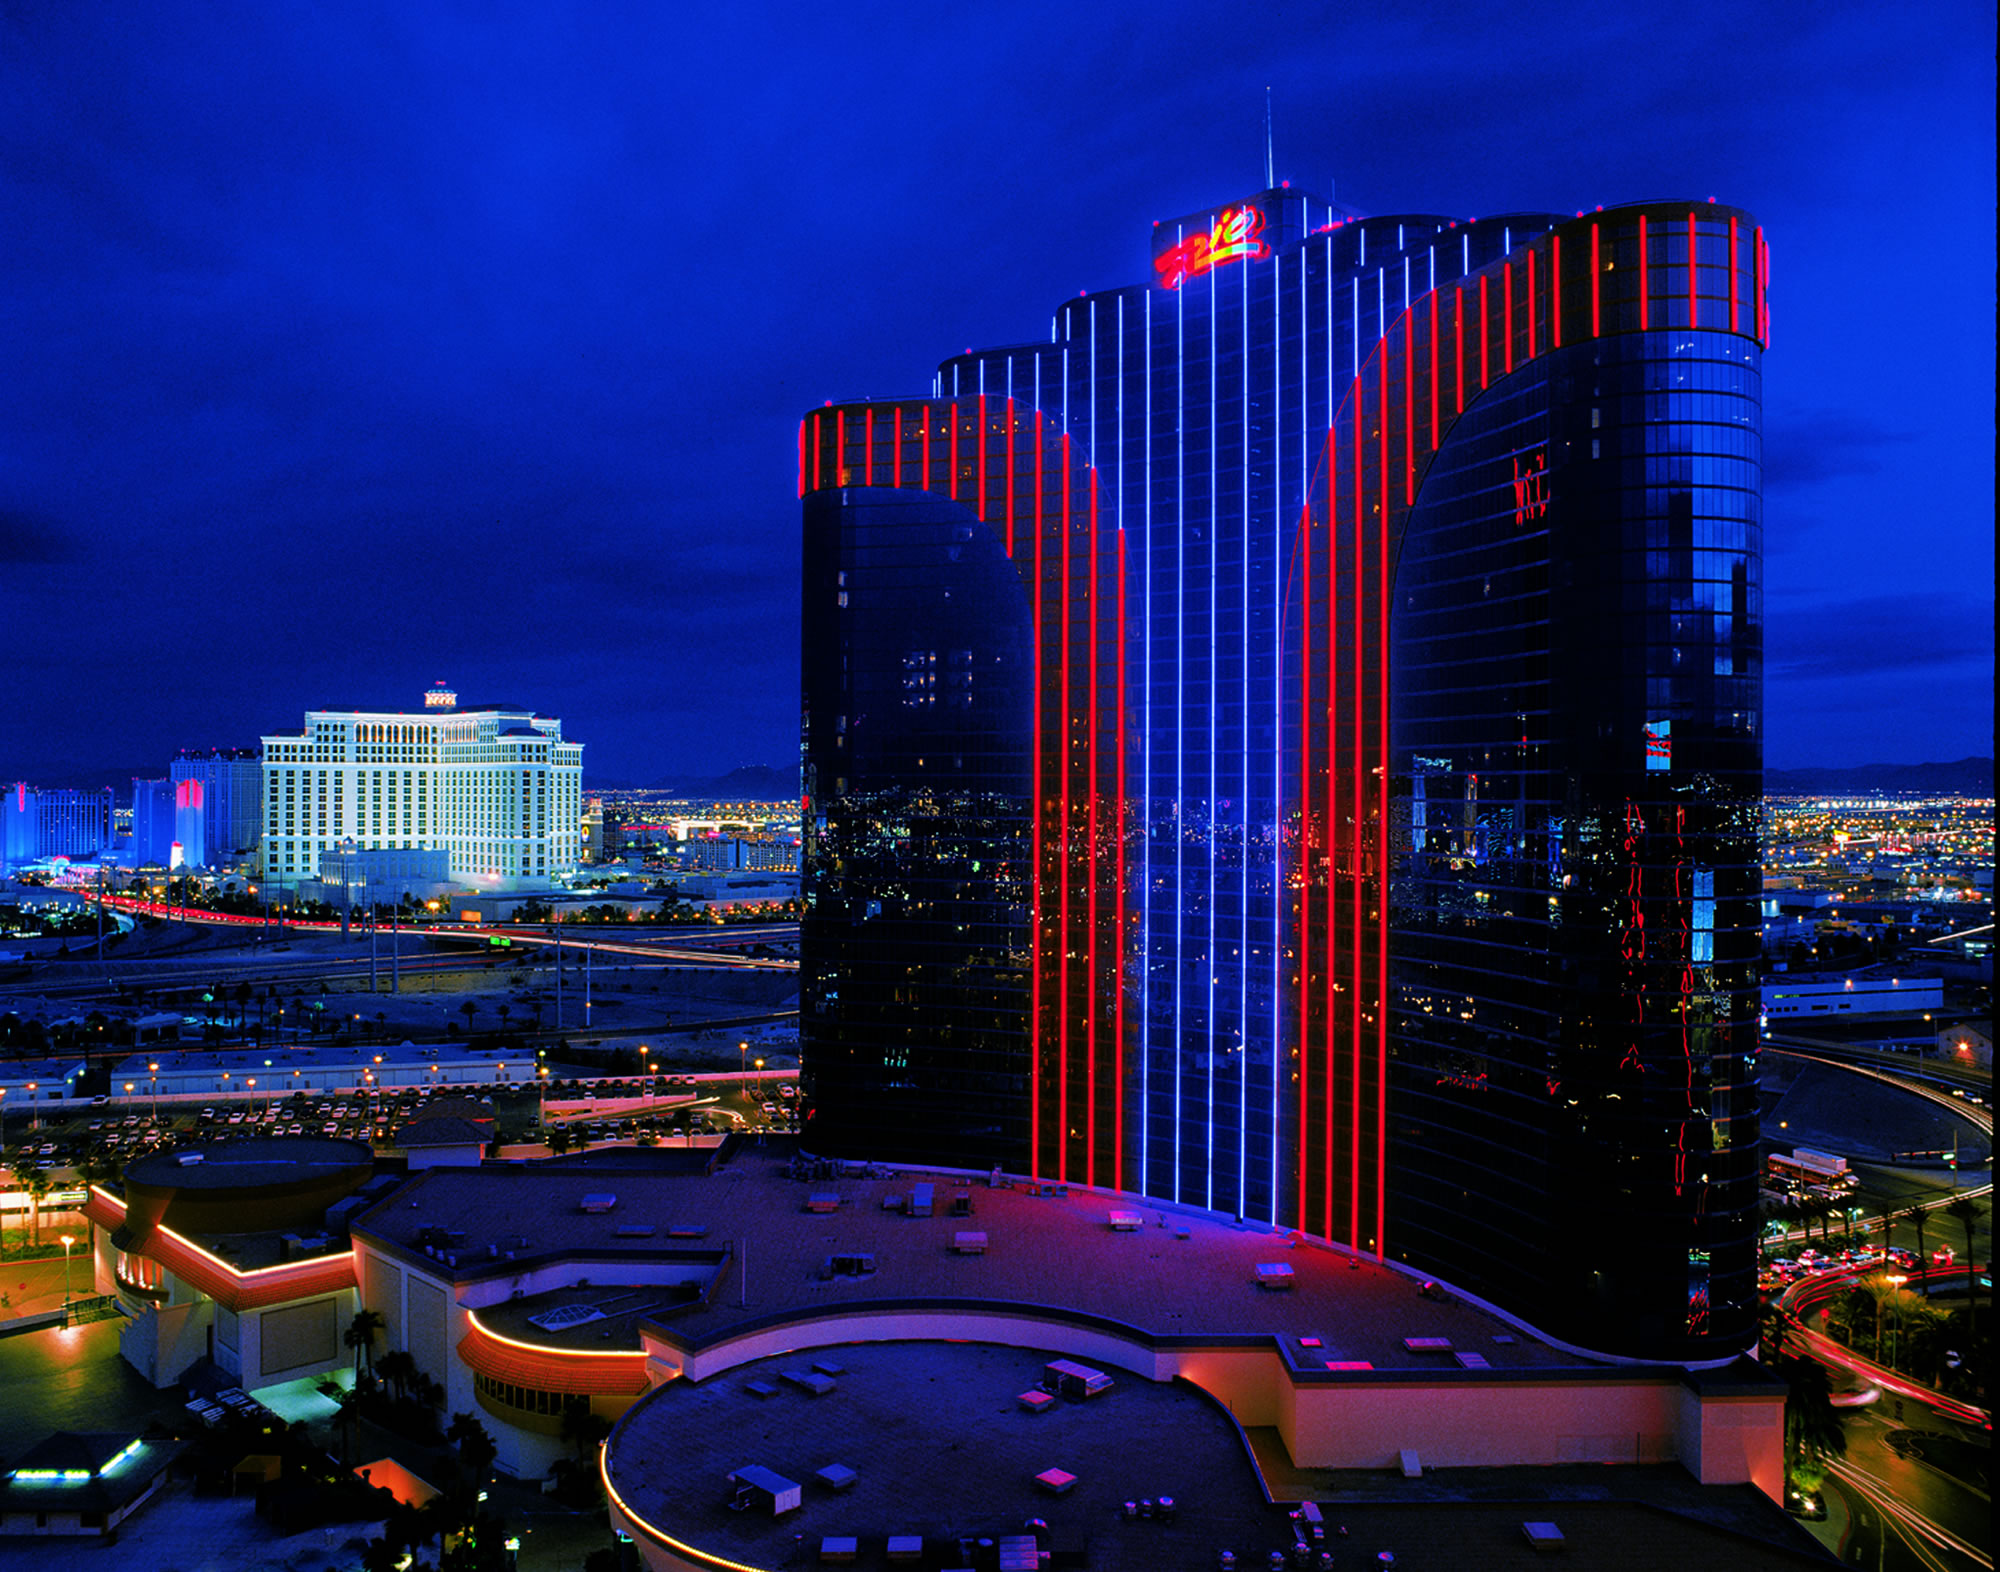 Best Vacation resort in Reno, NV. Hotel accommodation at